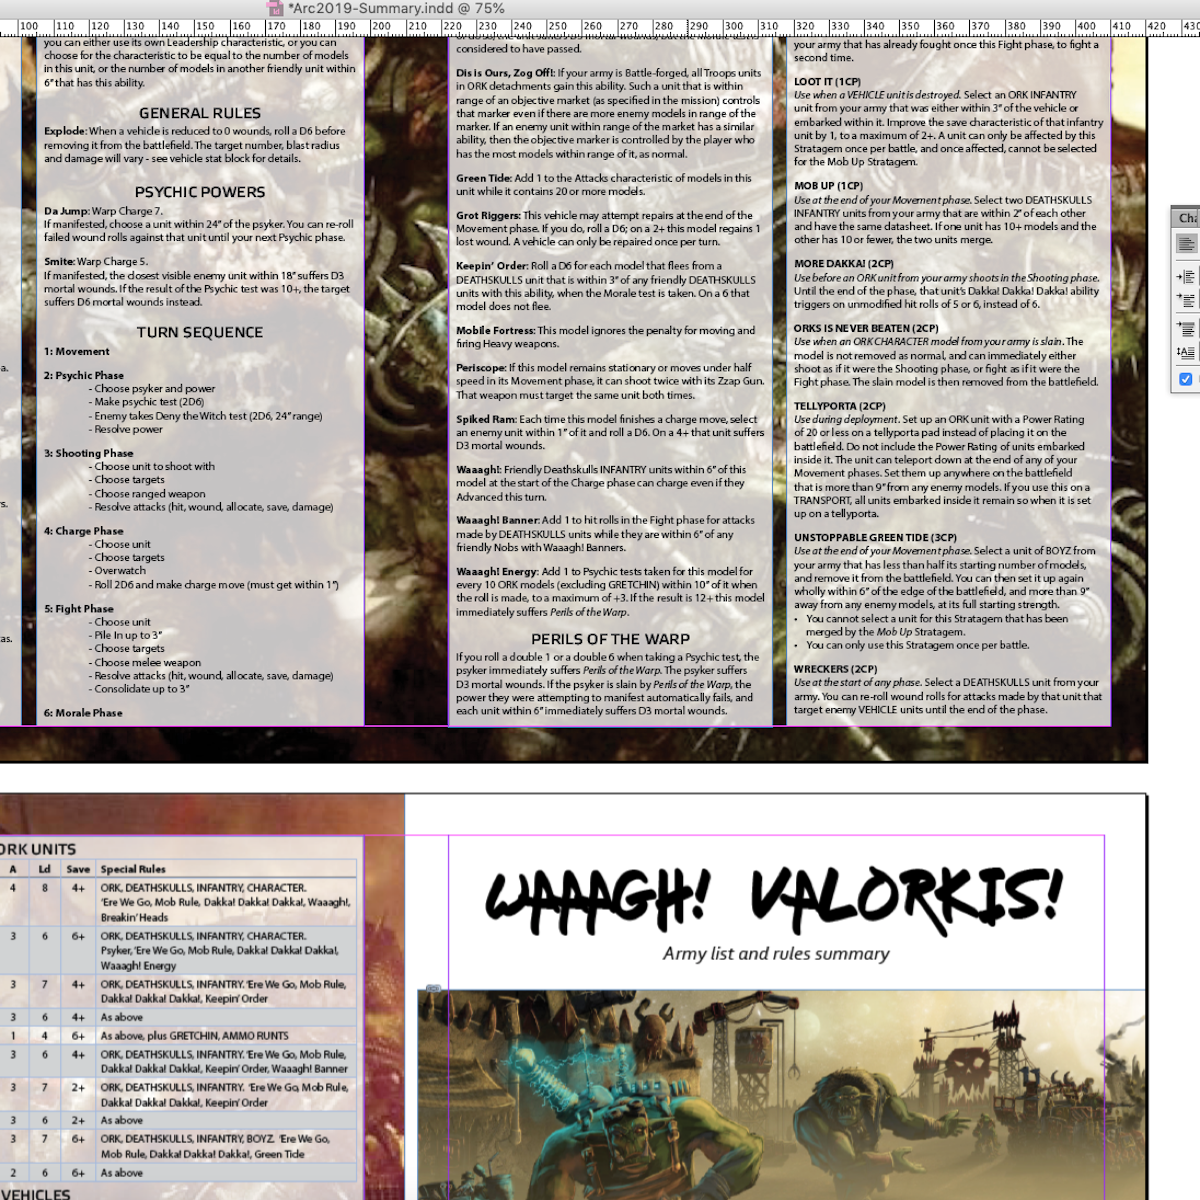 Arc40k Preparation – Waaagh! Valorkis 2019